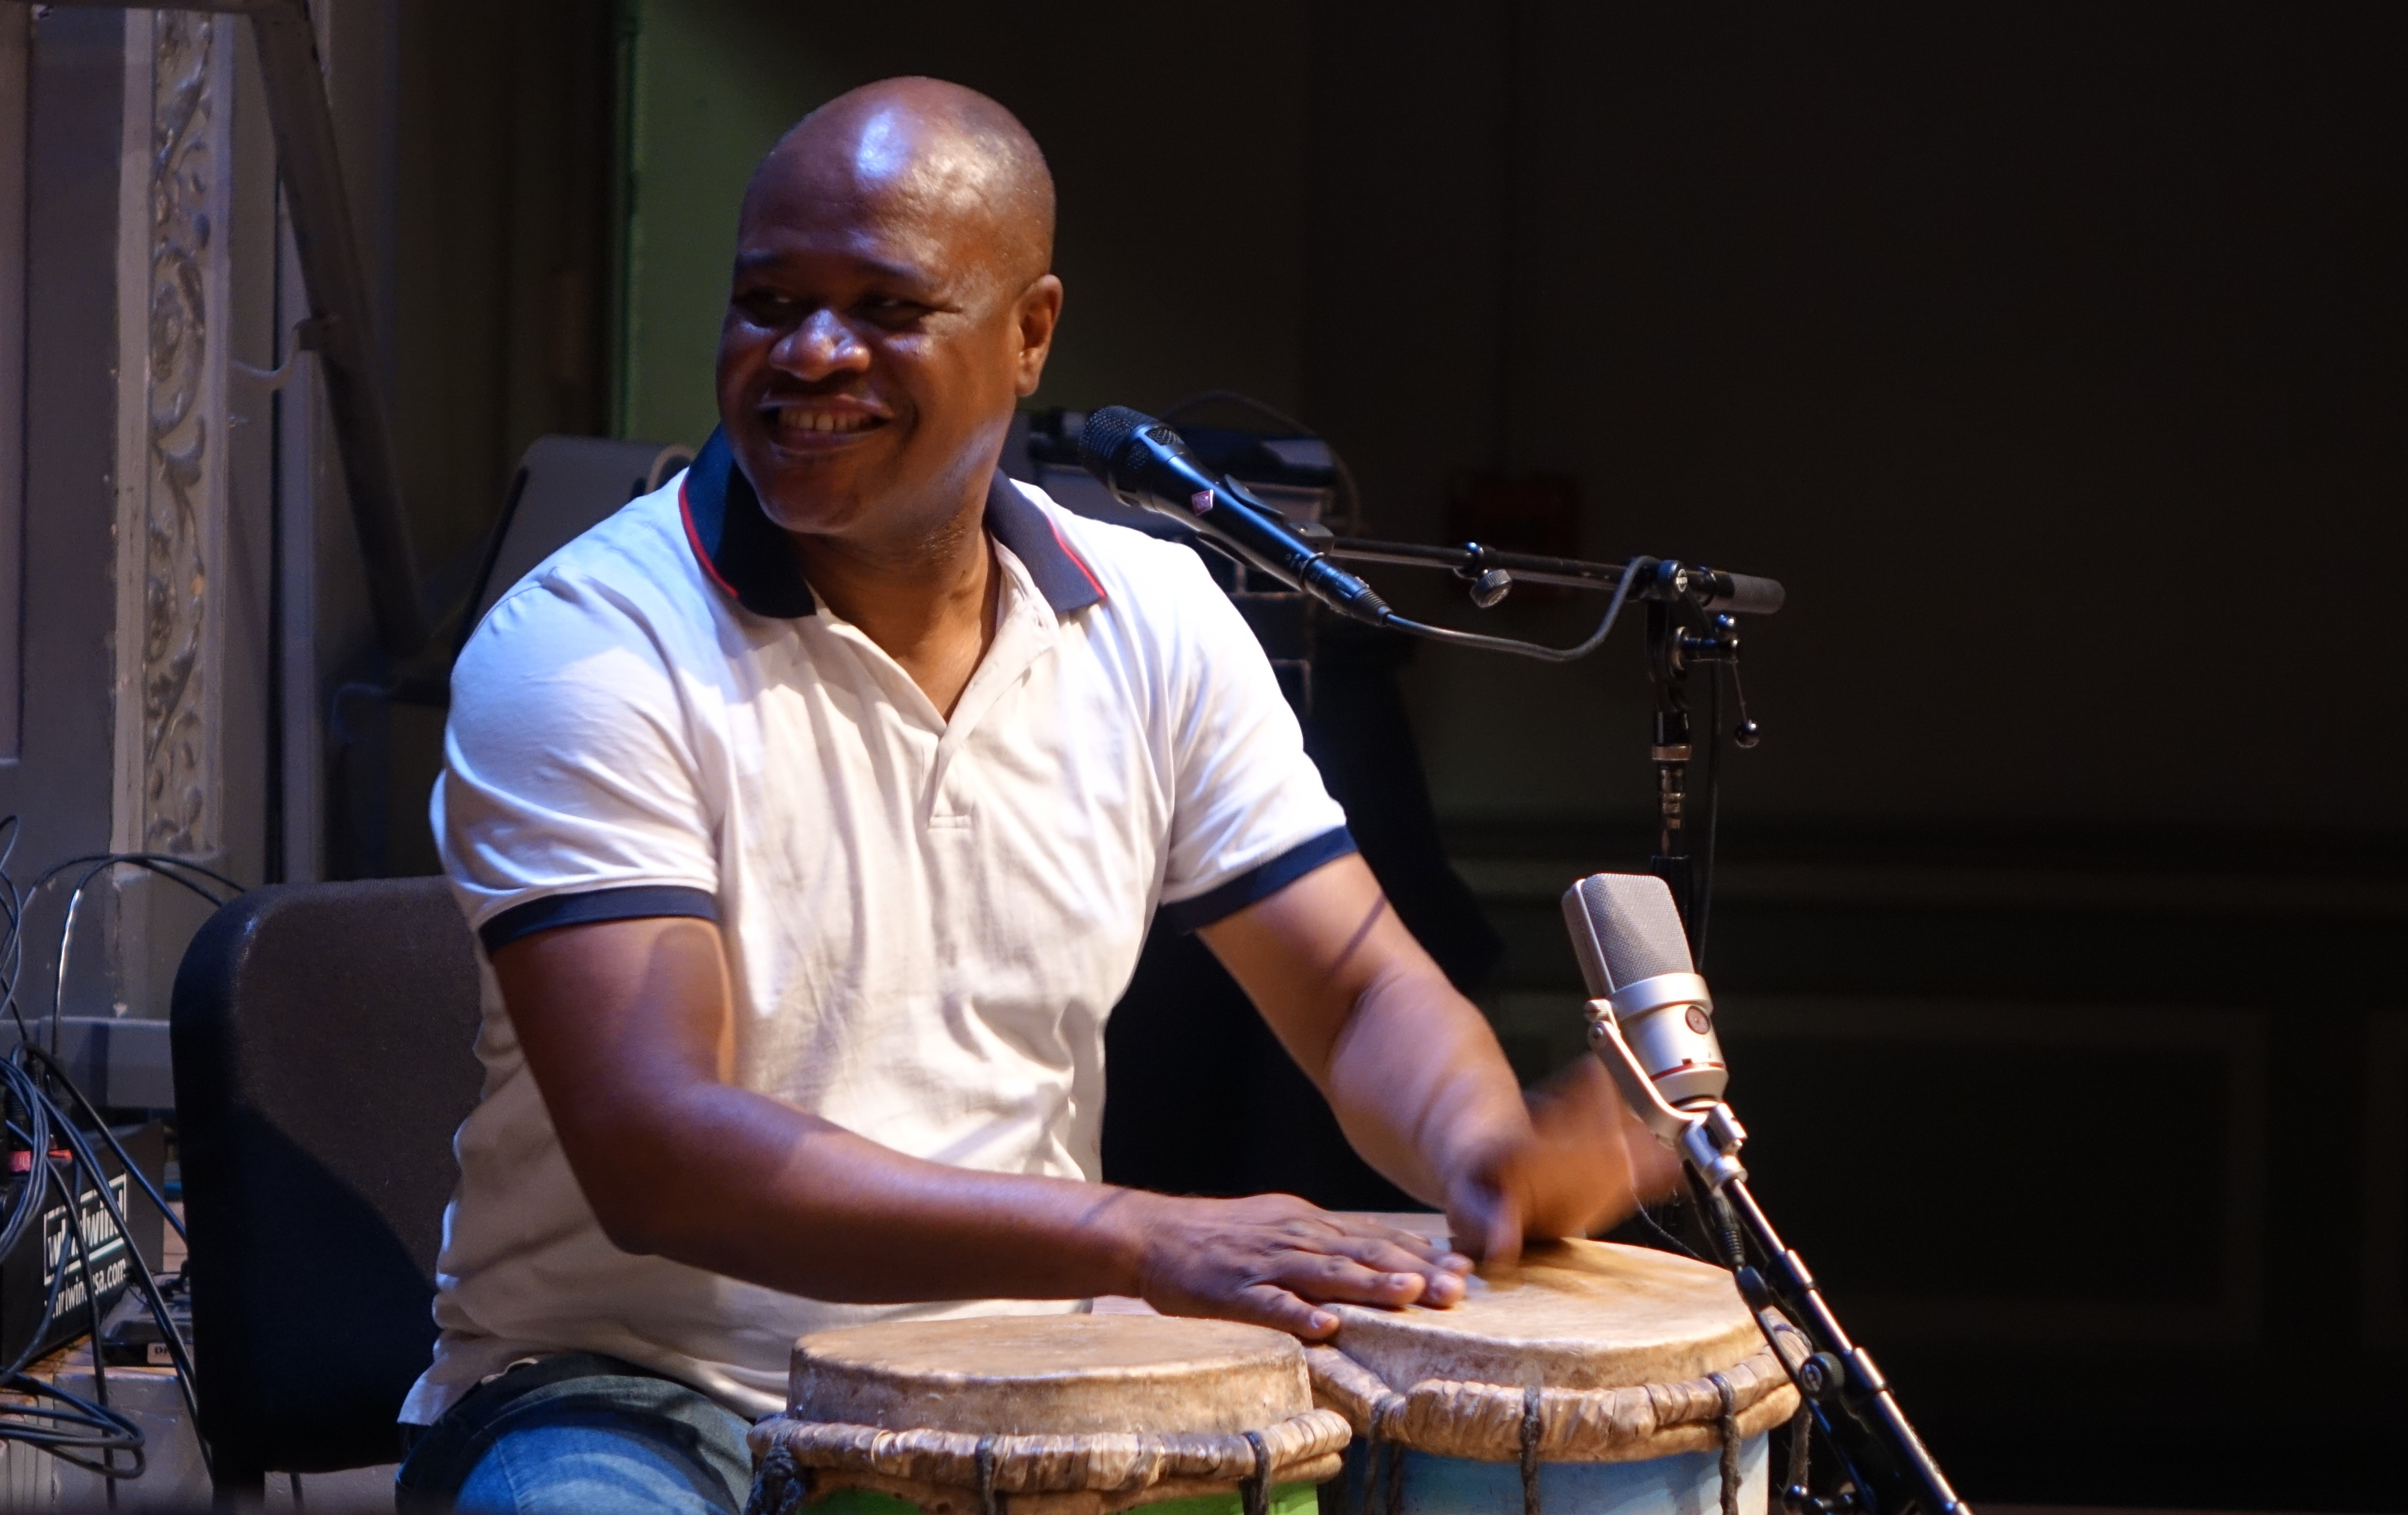 Jean Guy Rene at the Vision Festival in Roulette, Brooklyn in June 2019